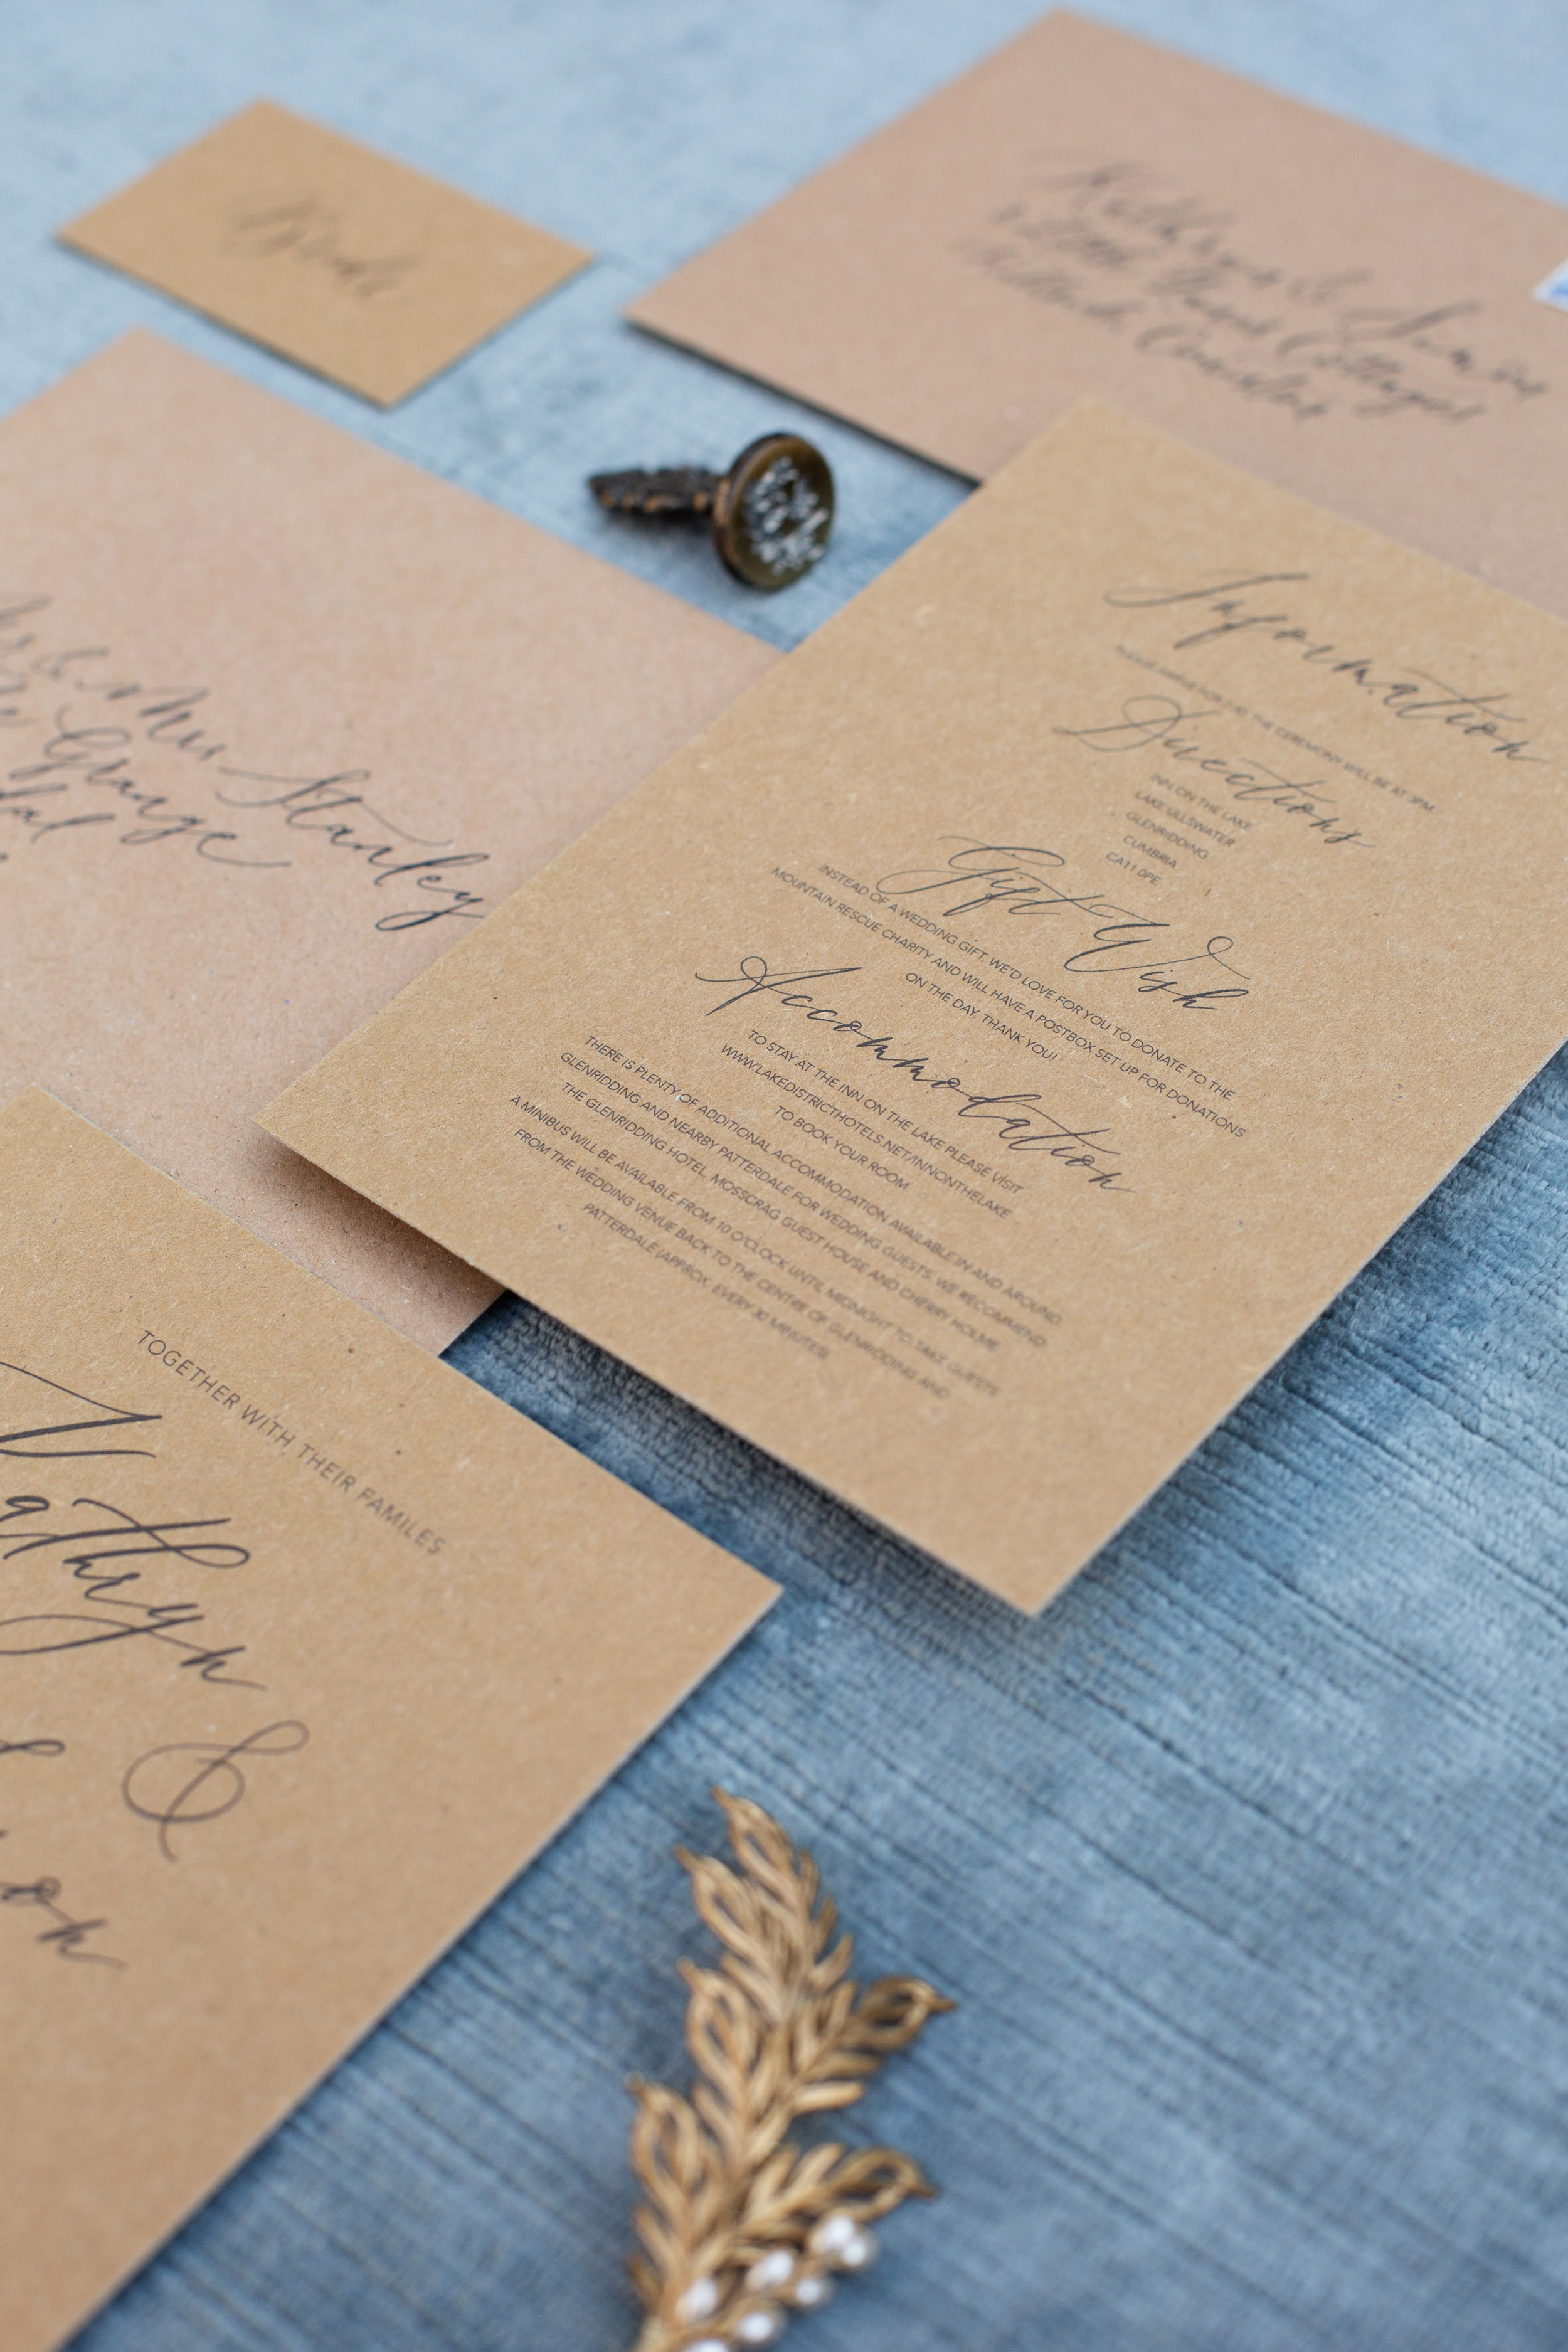 Rustic elegance sustainable wedding stationery from By Moon and Tide Calligraphy, photography credit Jess Reeve (5)